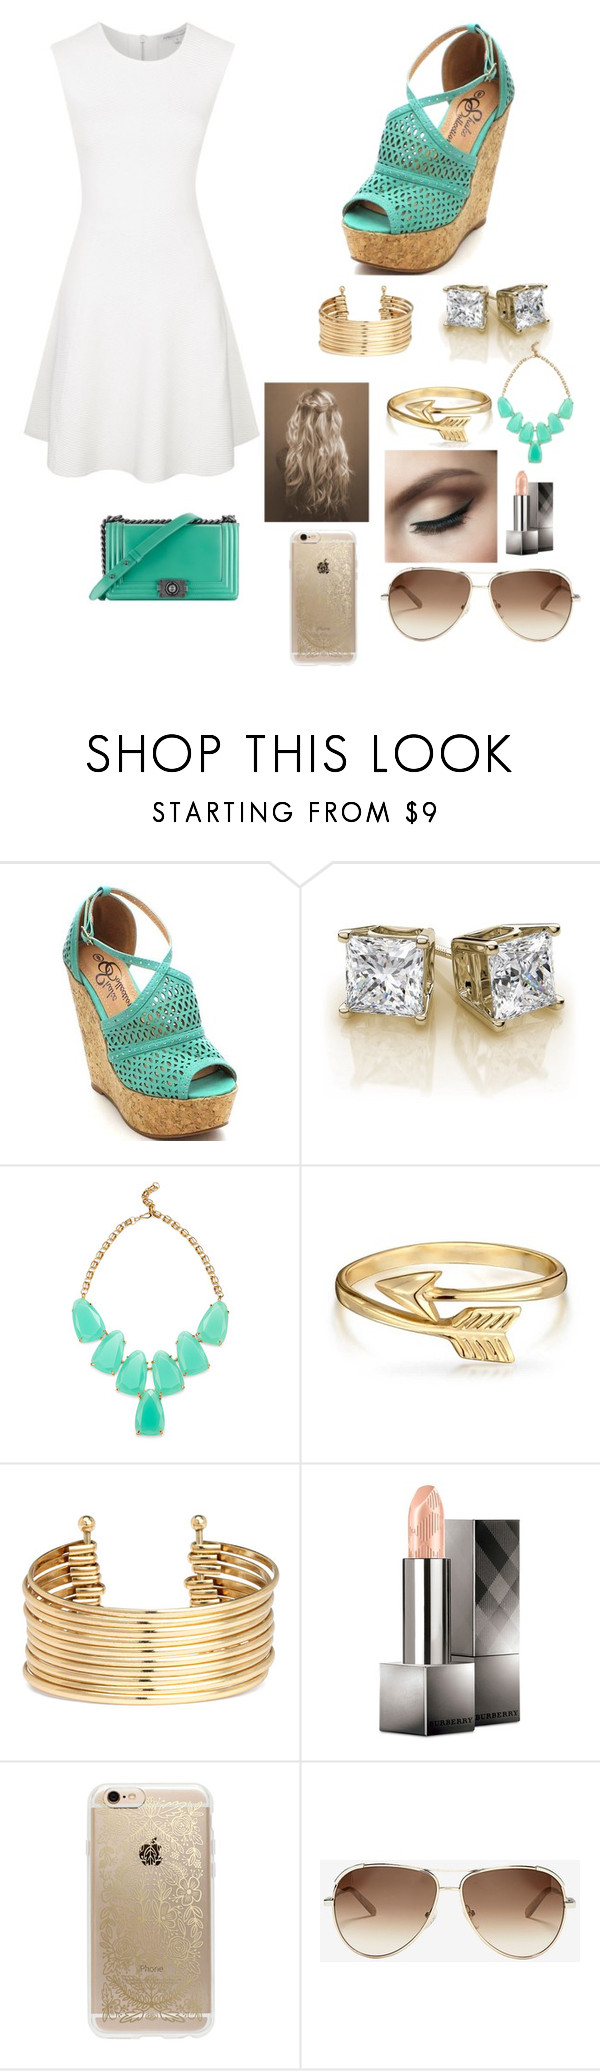 """""""Untitled #17"""" by gaellegermainlynn ❤ liked on Polyvore featuring Kendra Scott, Bling Jewelry, H&M, Burberry, Chanel, Rifle Paper Co, Chloé and Rebecca Minkoff"""